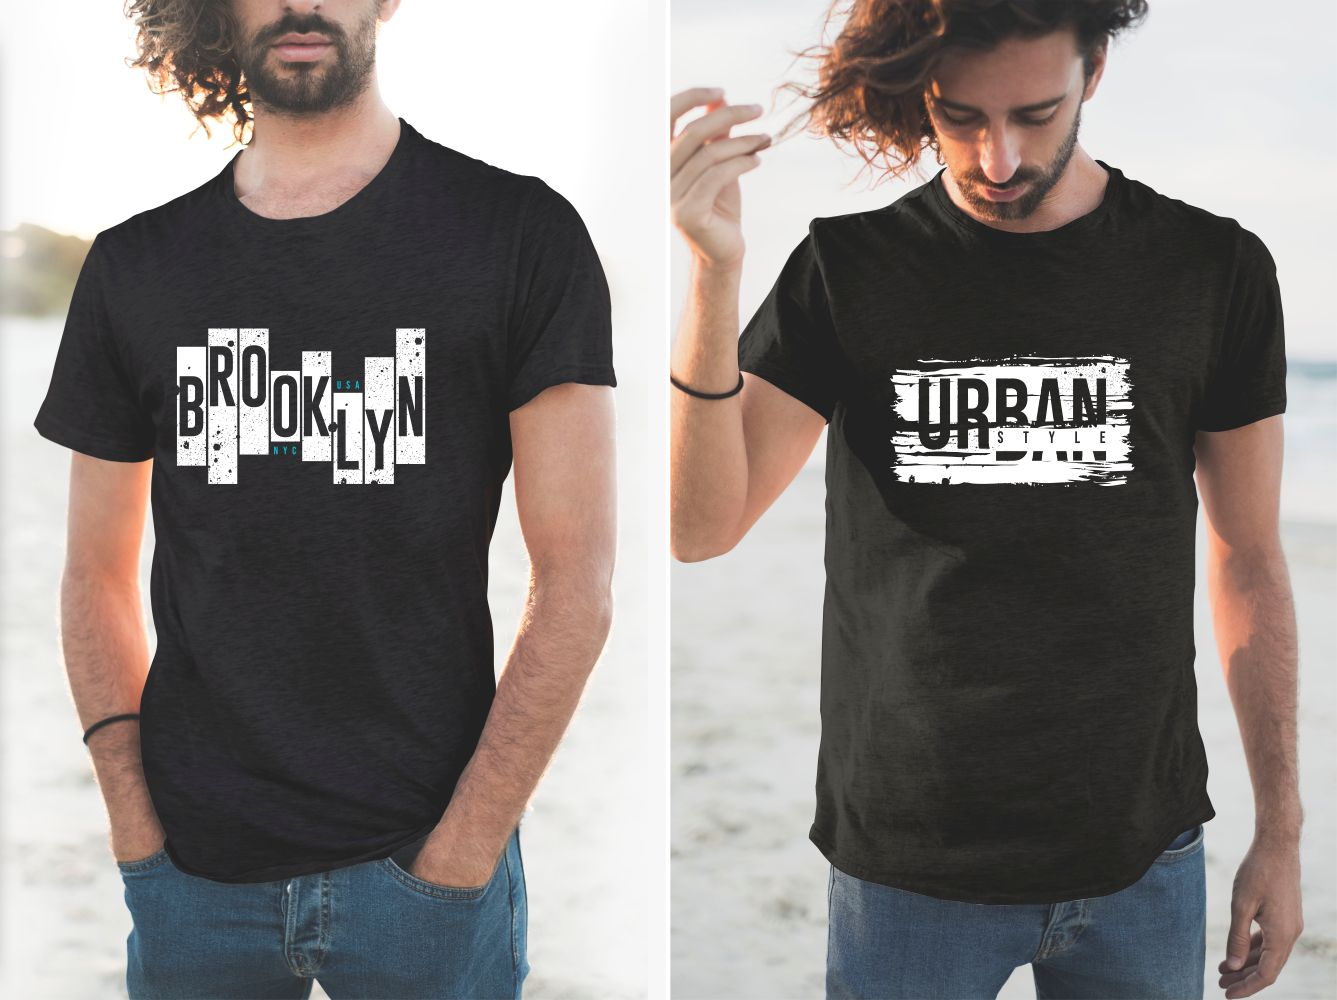 Black T-shirts with the original NYC area name.